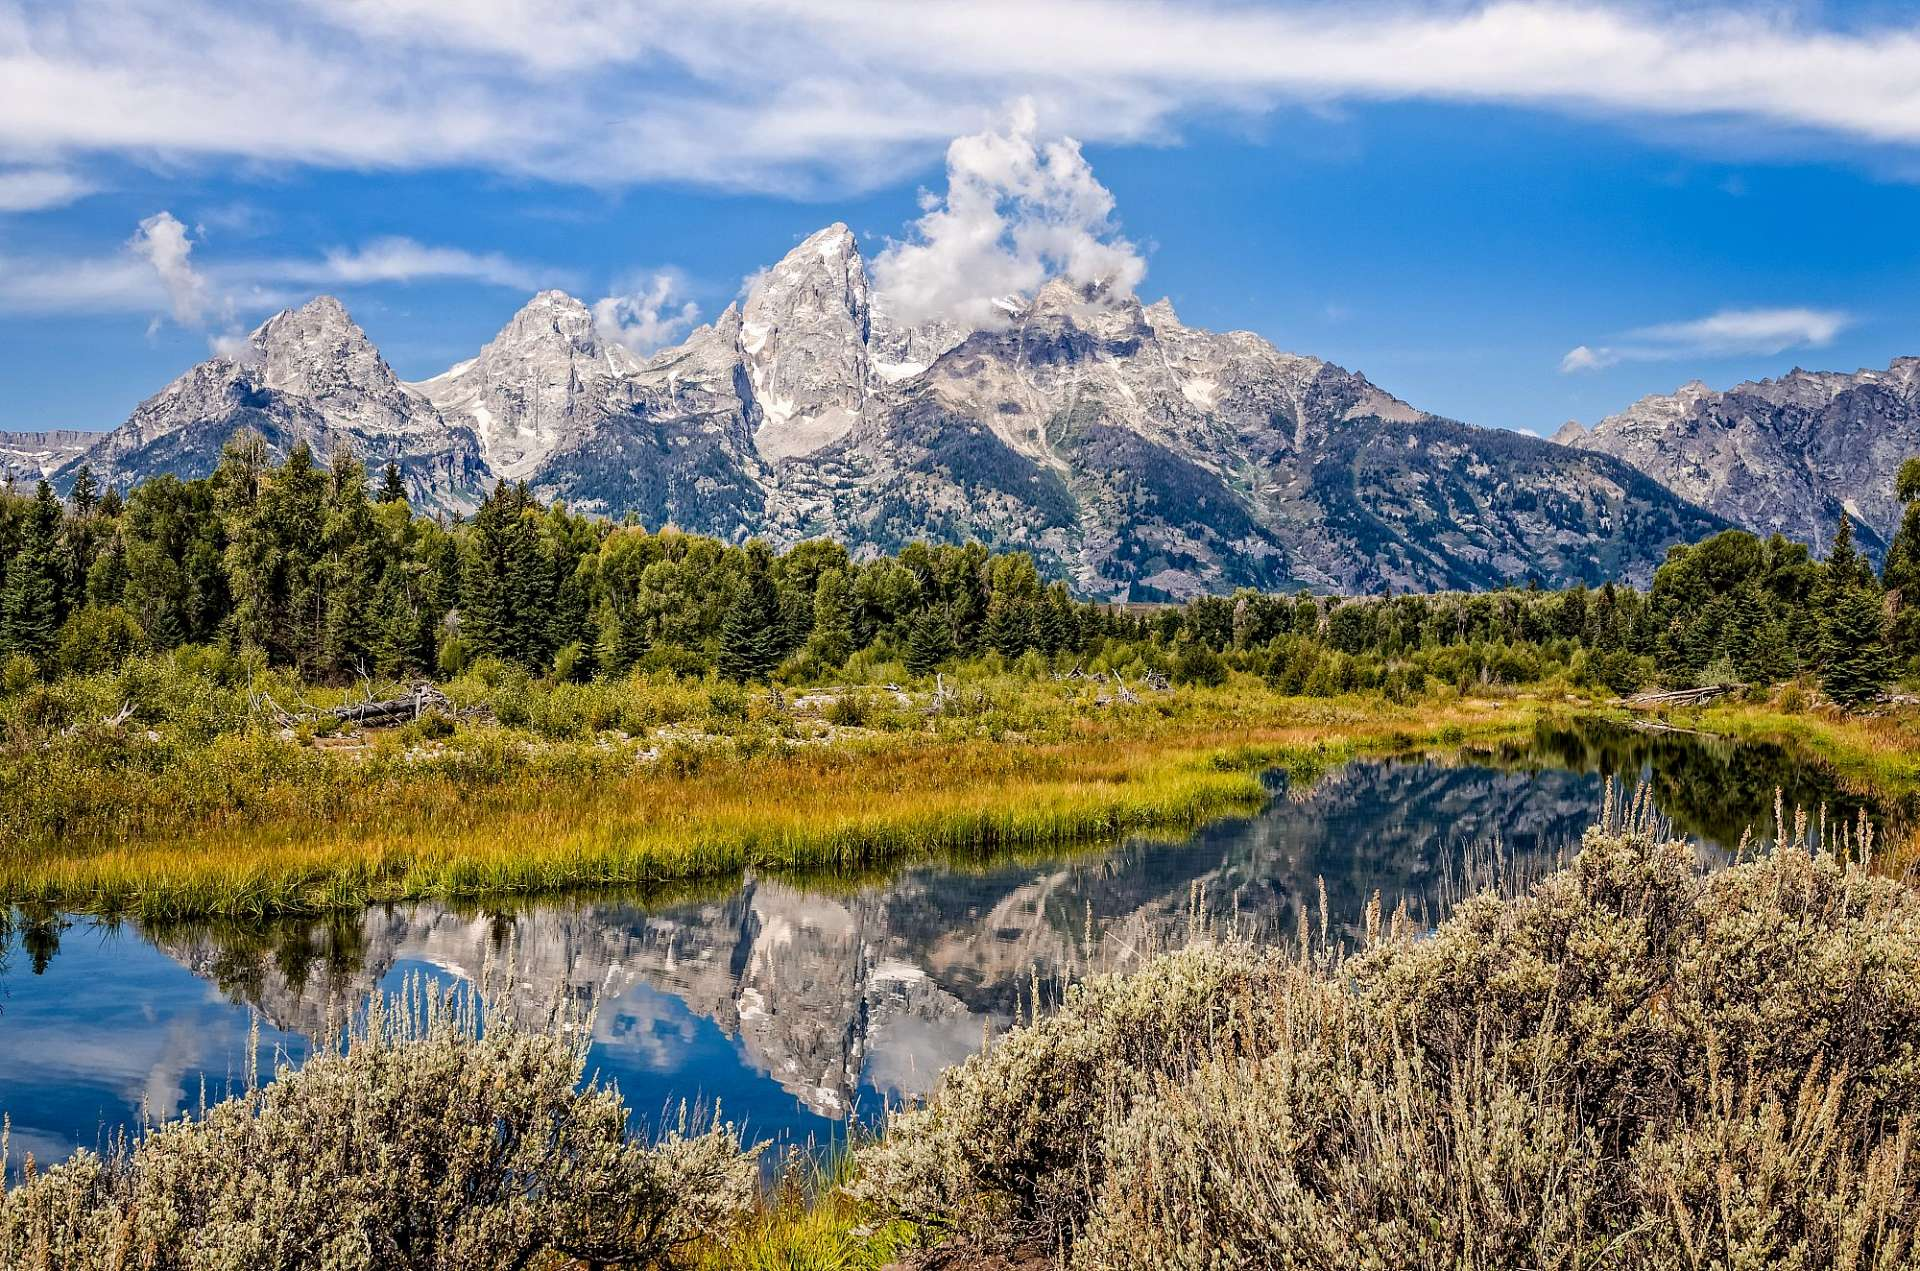 Klare Seen, blaue Berge: Teton National Park